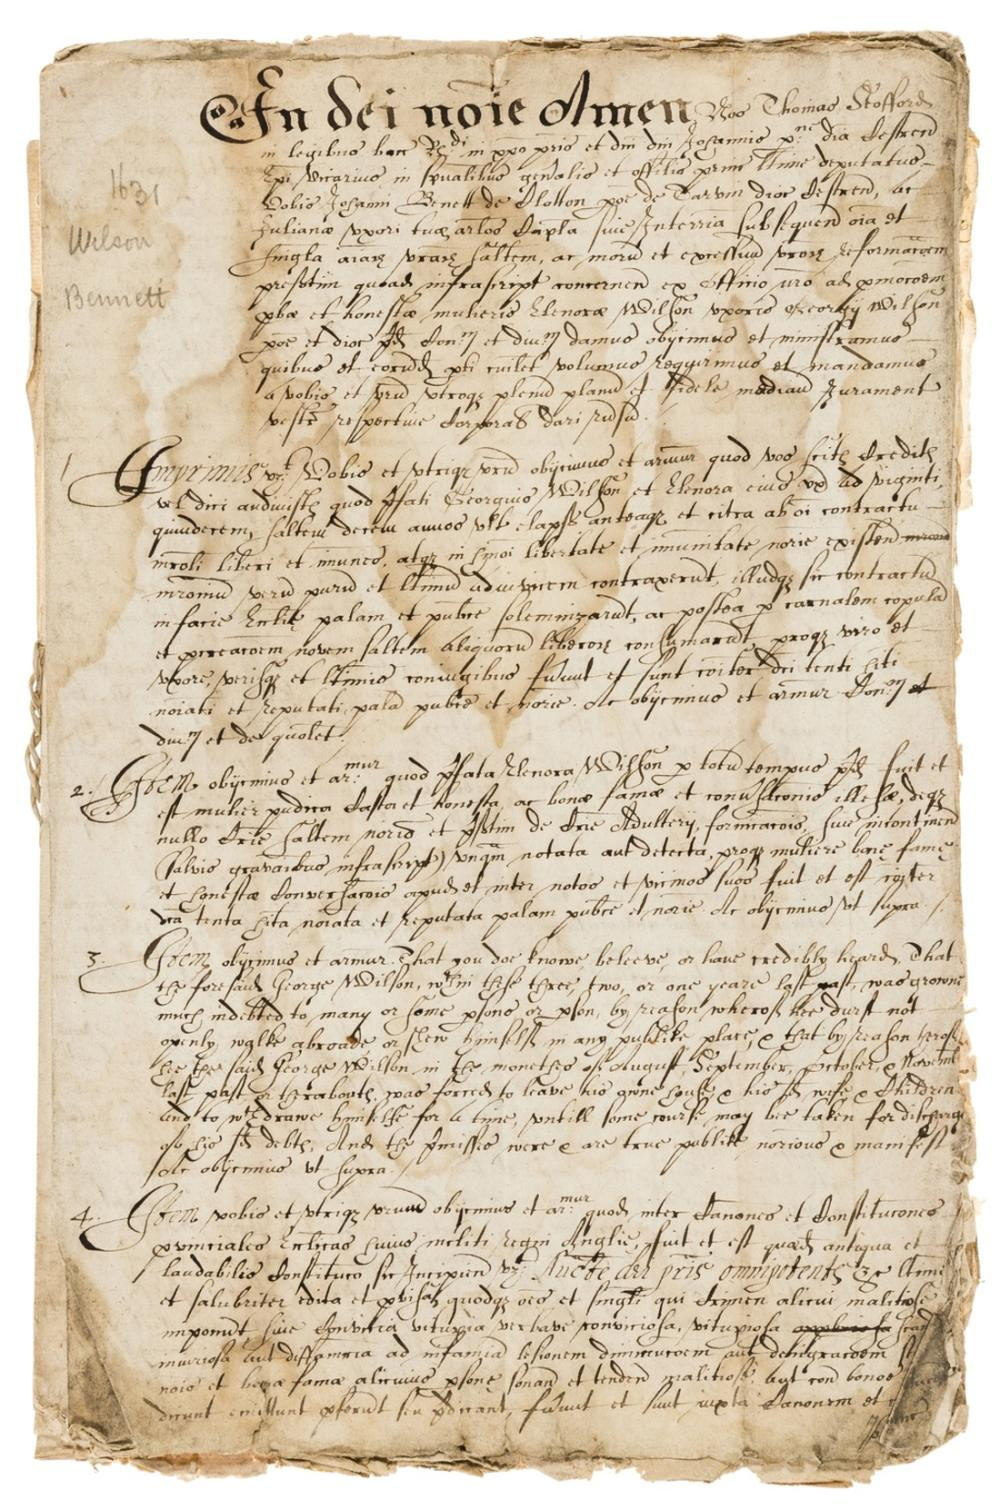 17th century Legal Cases.- Papers relating to legal cases in the Chester area, including an adultery case between George Wilson and his wife Elenora of Tarvin near Chester, manuscripts in English and …